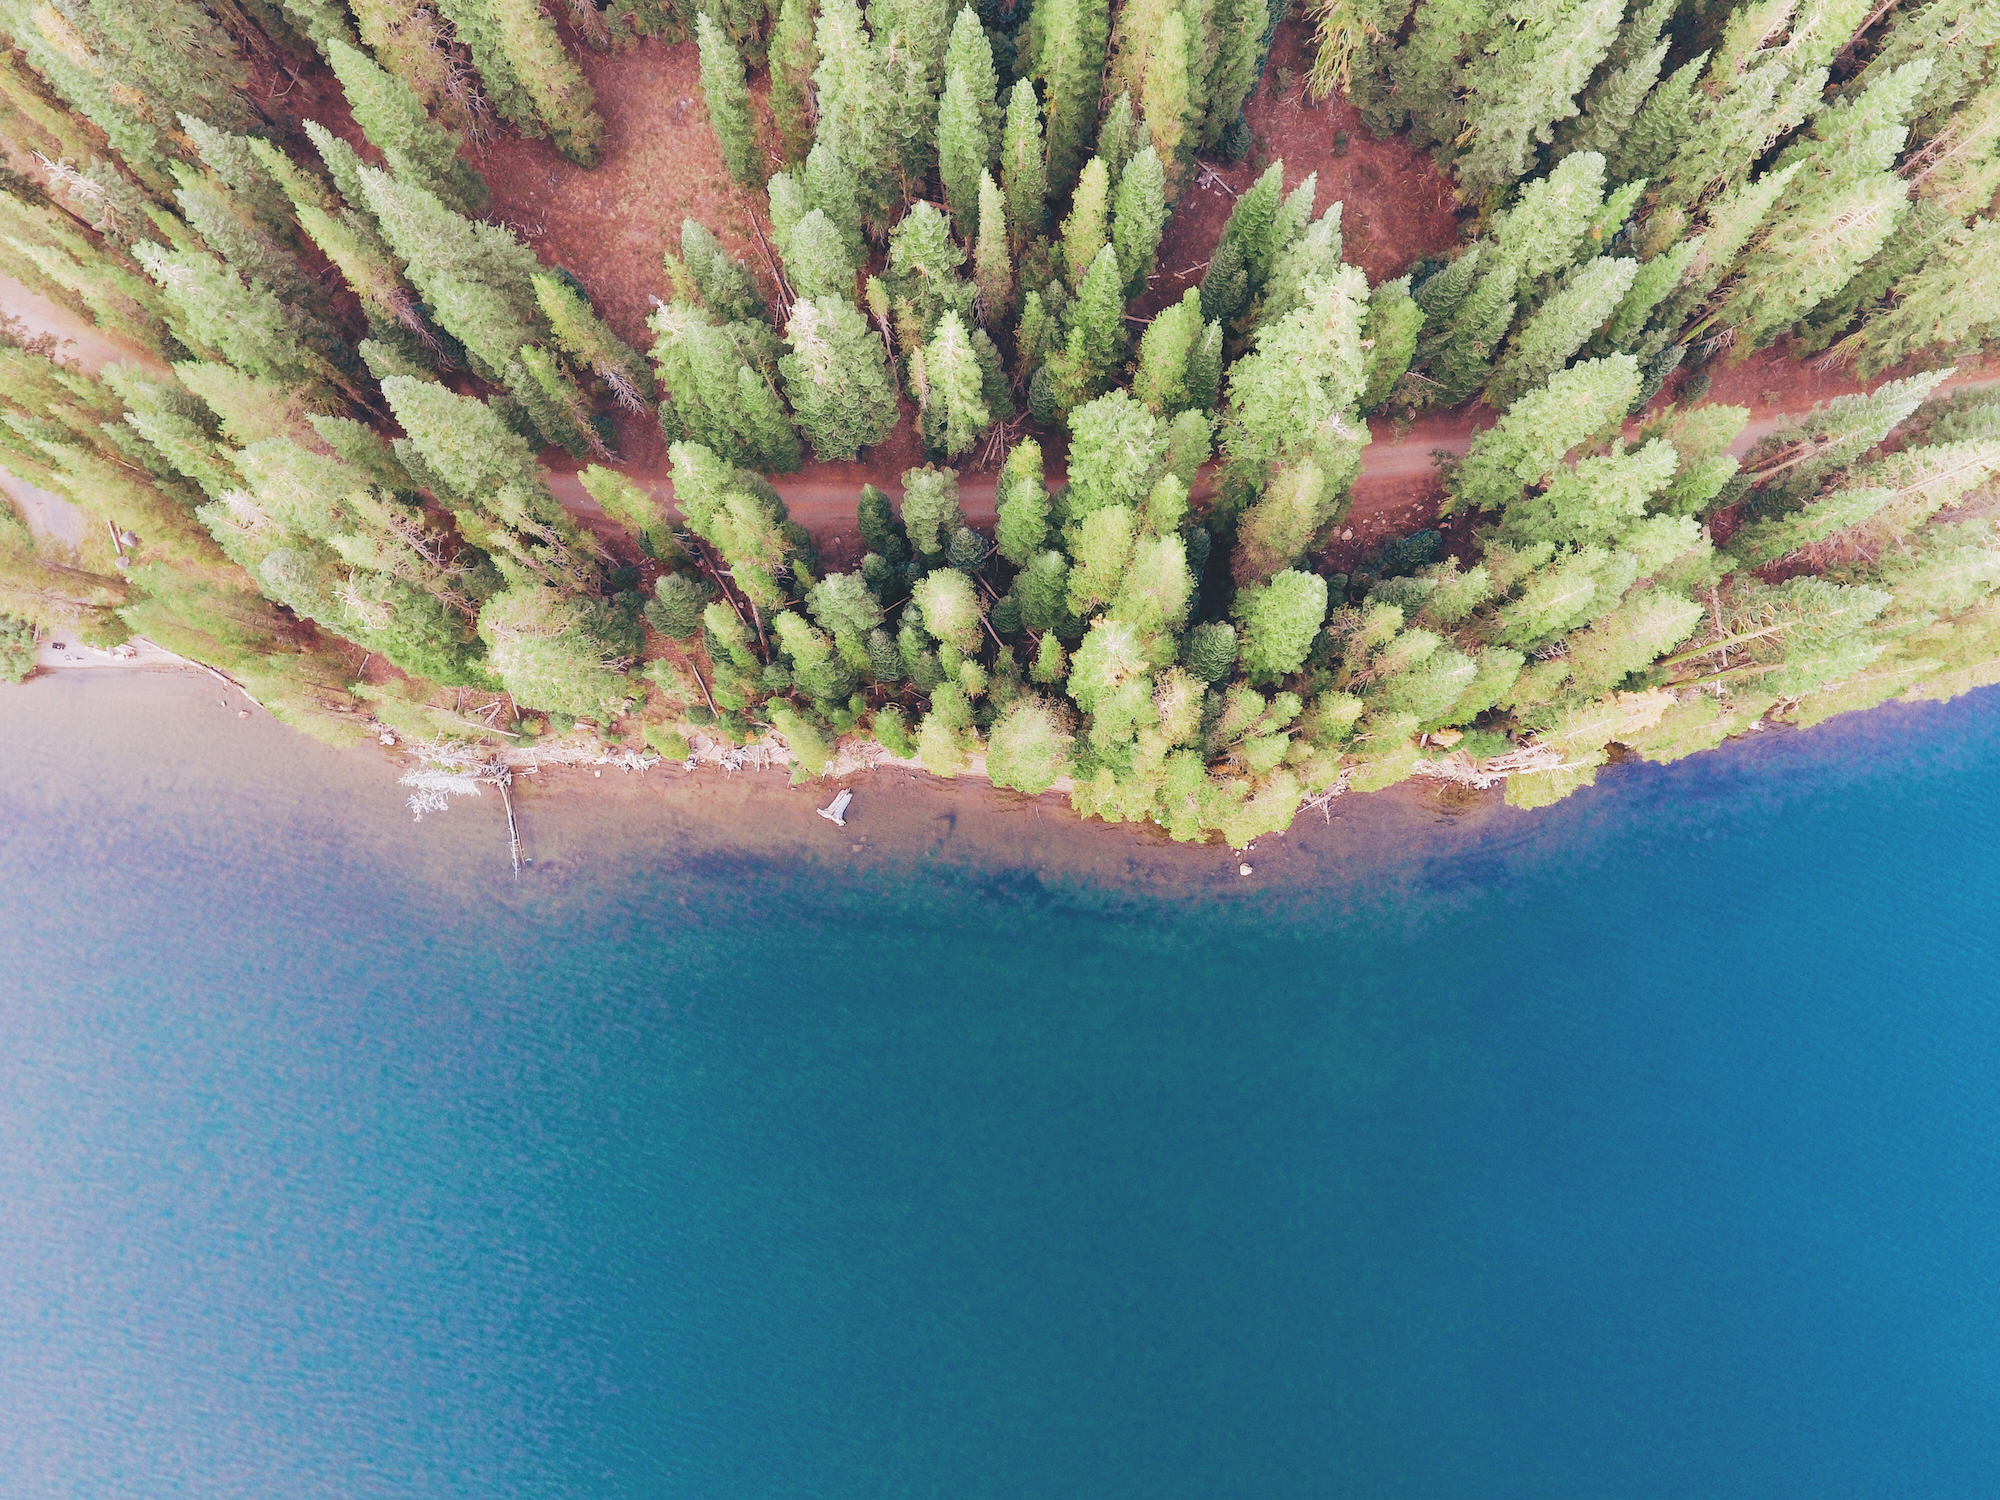 Forest from above, by Will Stewart